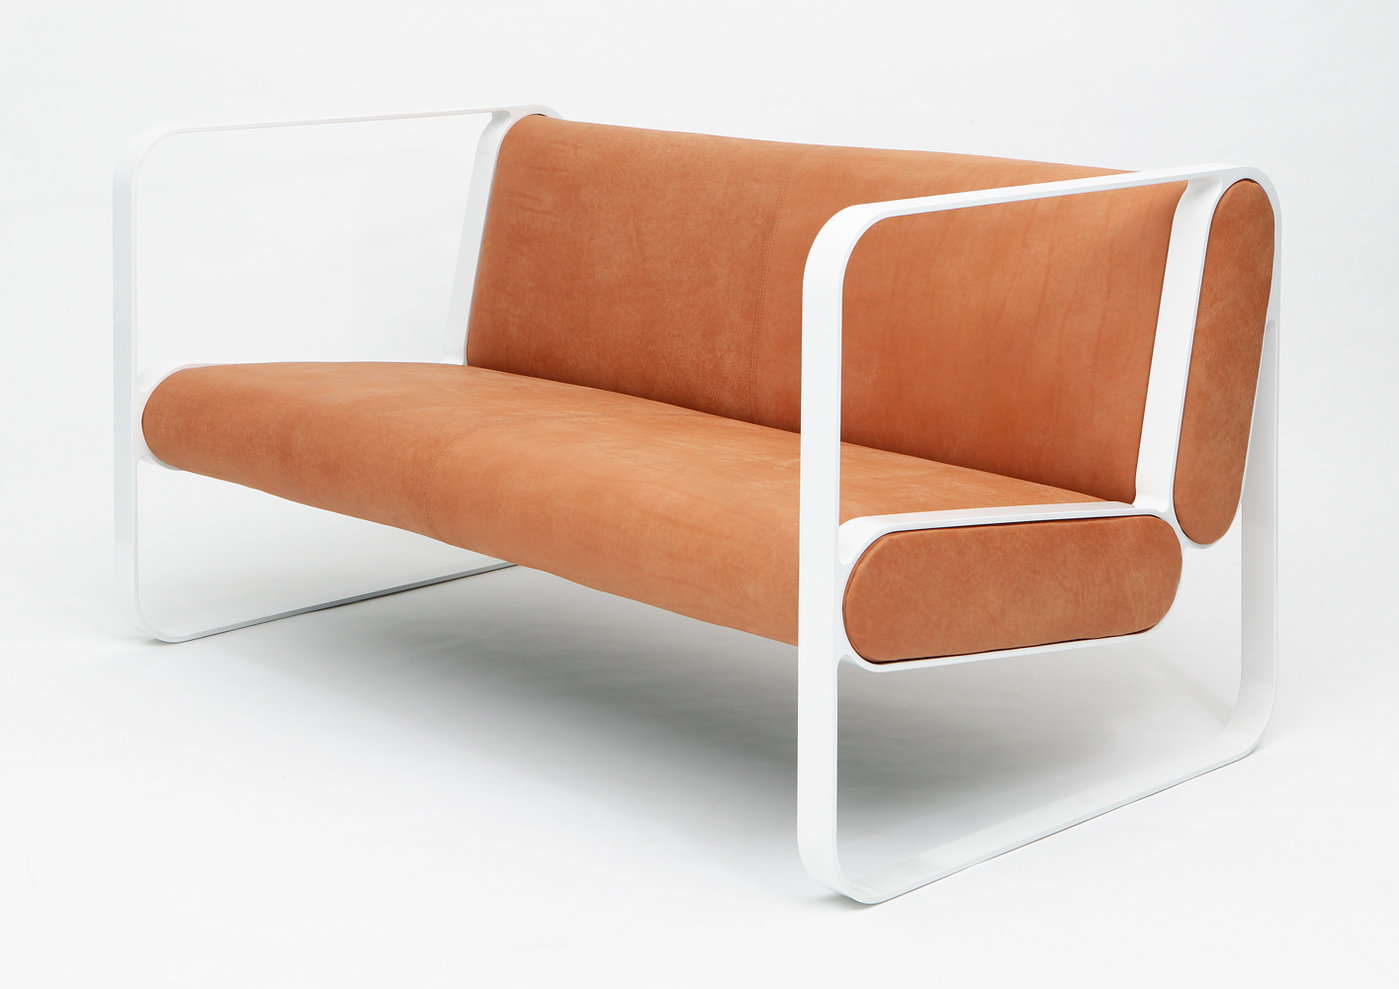 Big Sofa Christian New Furniture Collection By Christian Dorn By Christian